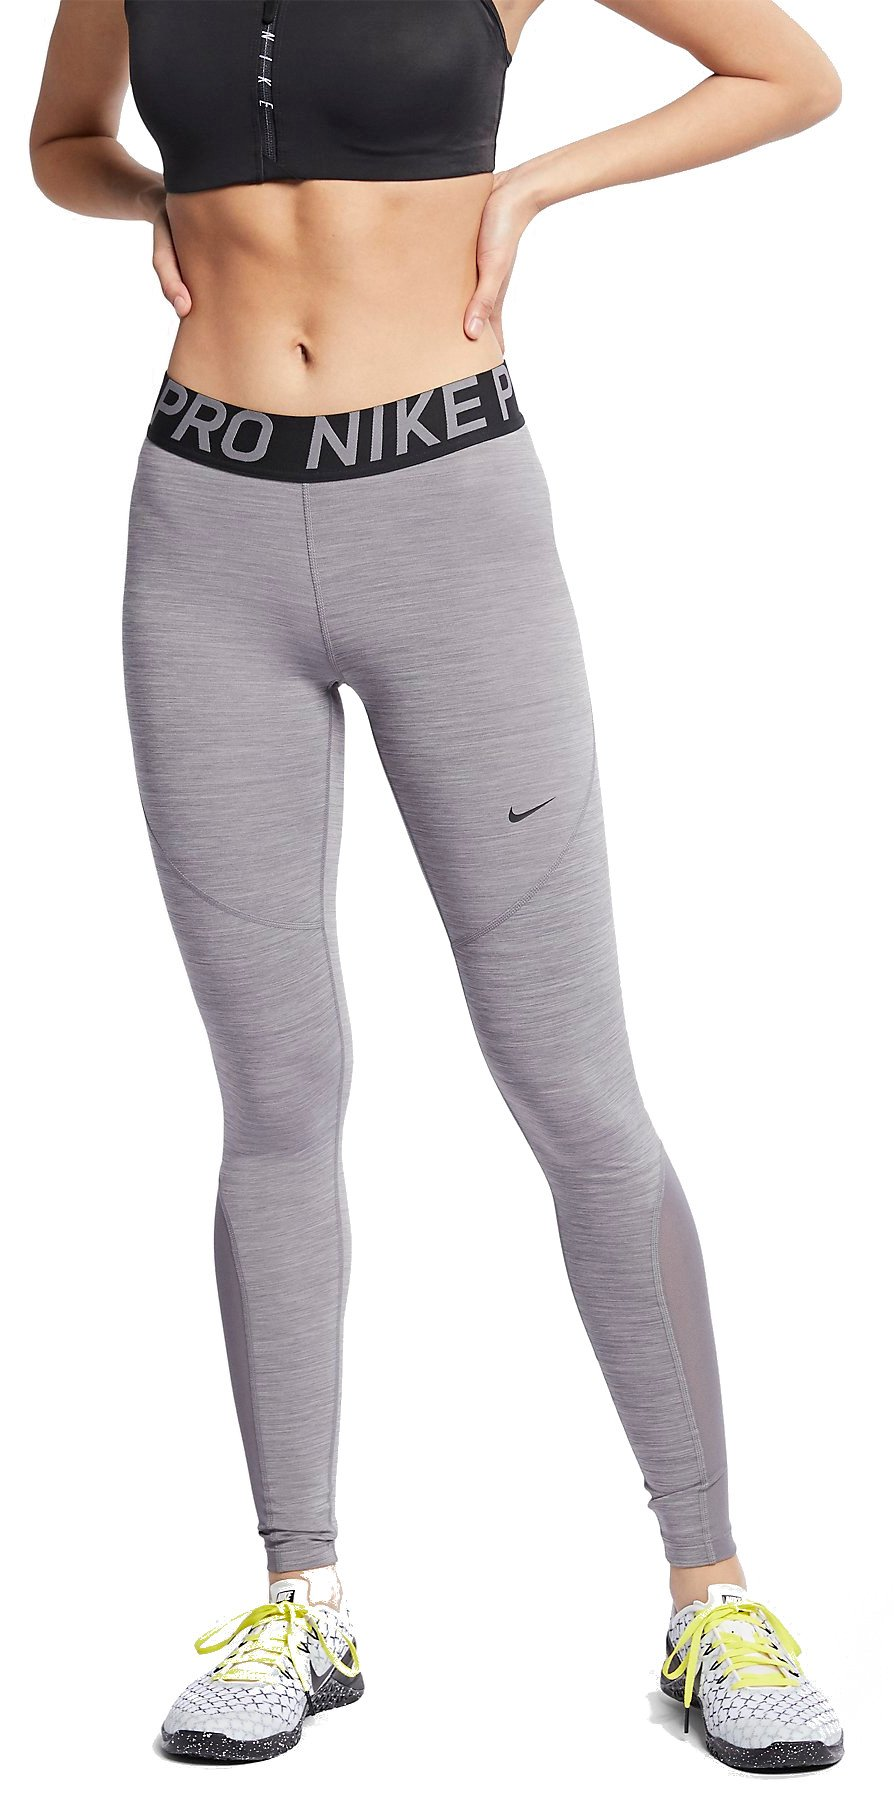 Ghette Nike W NP TIGHT